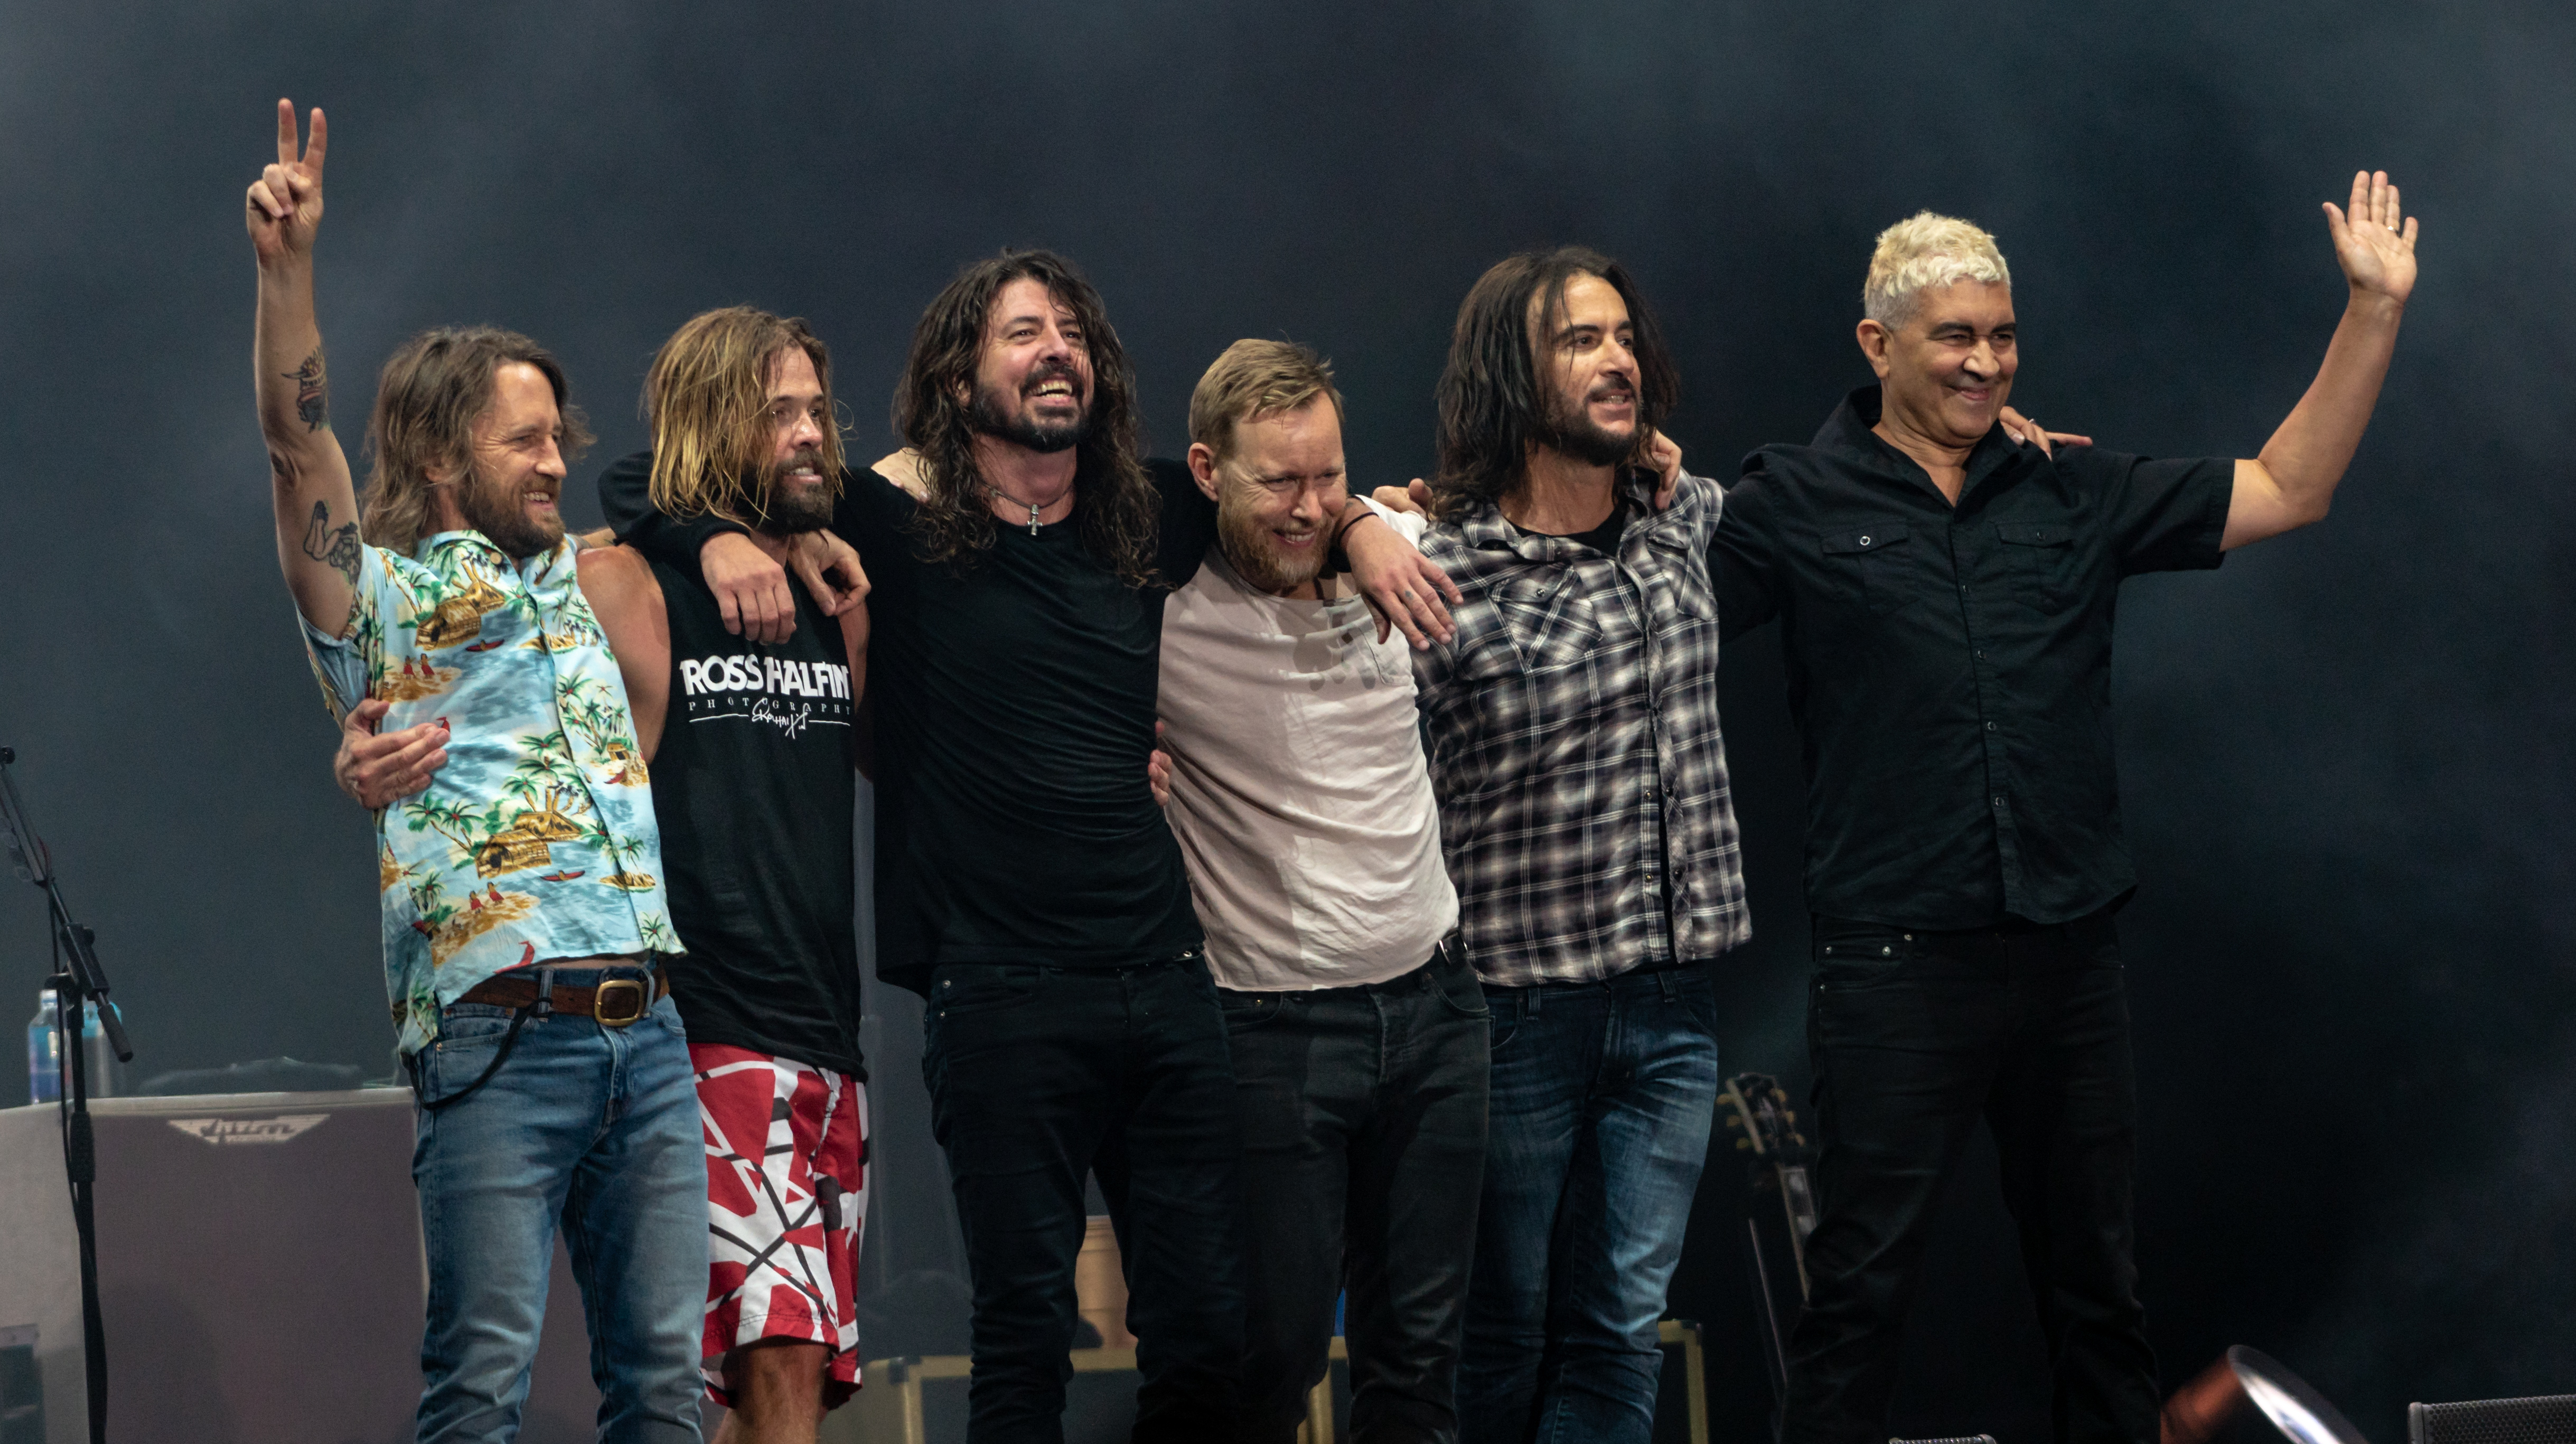 Foo Fighters after performing in June 2018. From left to right: [[Chris Shiflett]], [[Taylor Hawkins]], [[Dave Grohl]], [[Nate Mendel]], [[Rami Jaffee]], and [[Pat Smear]].